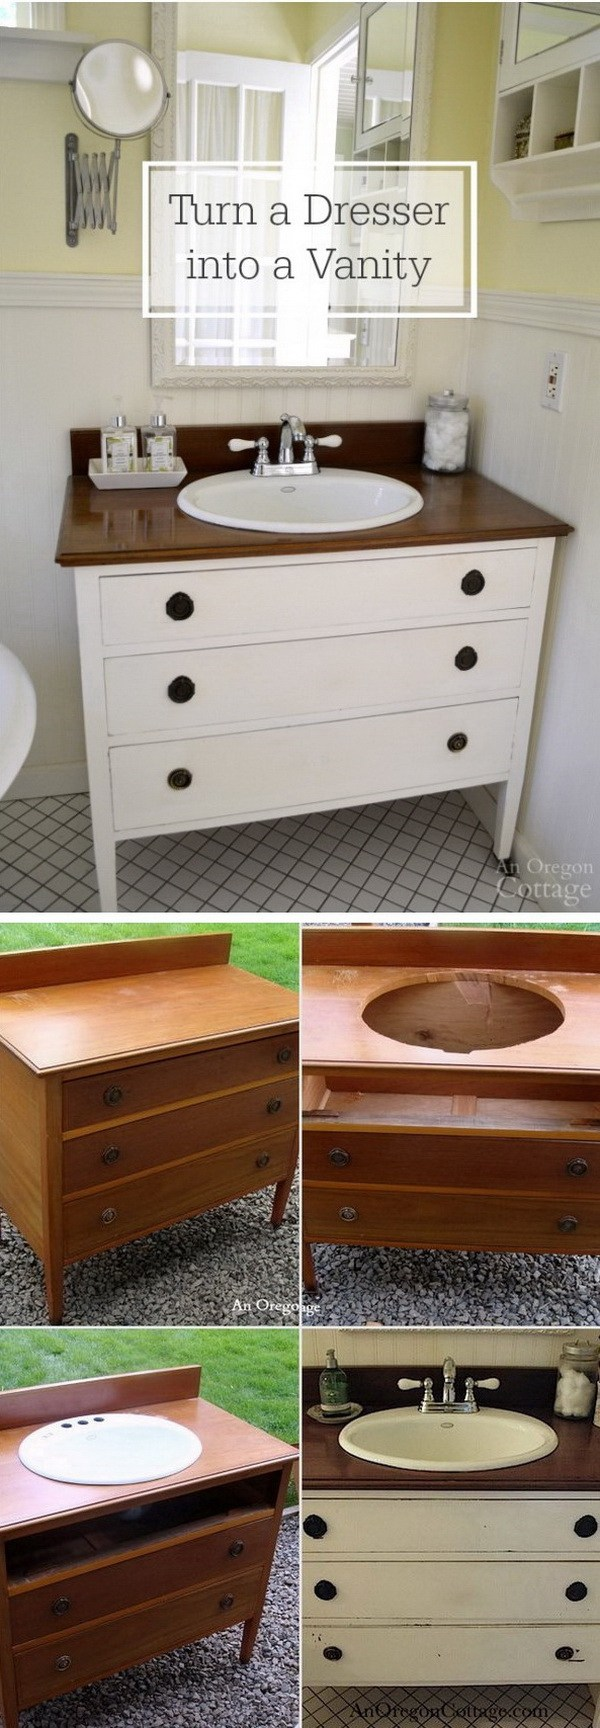 DIY Bathroom Vanity with Drawers for Storage.